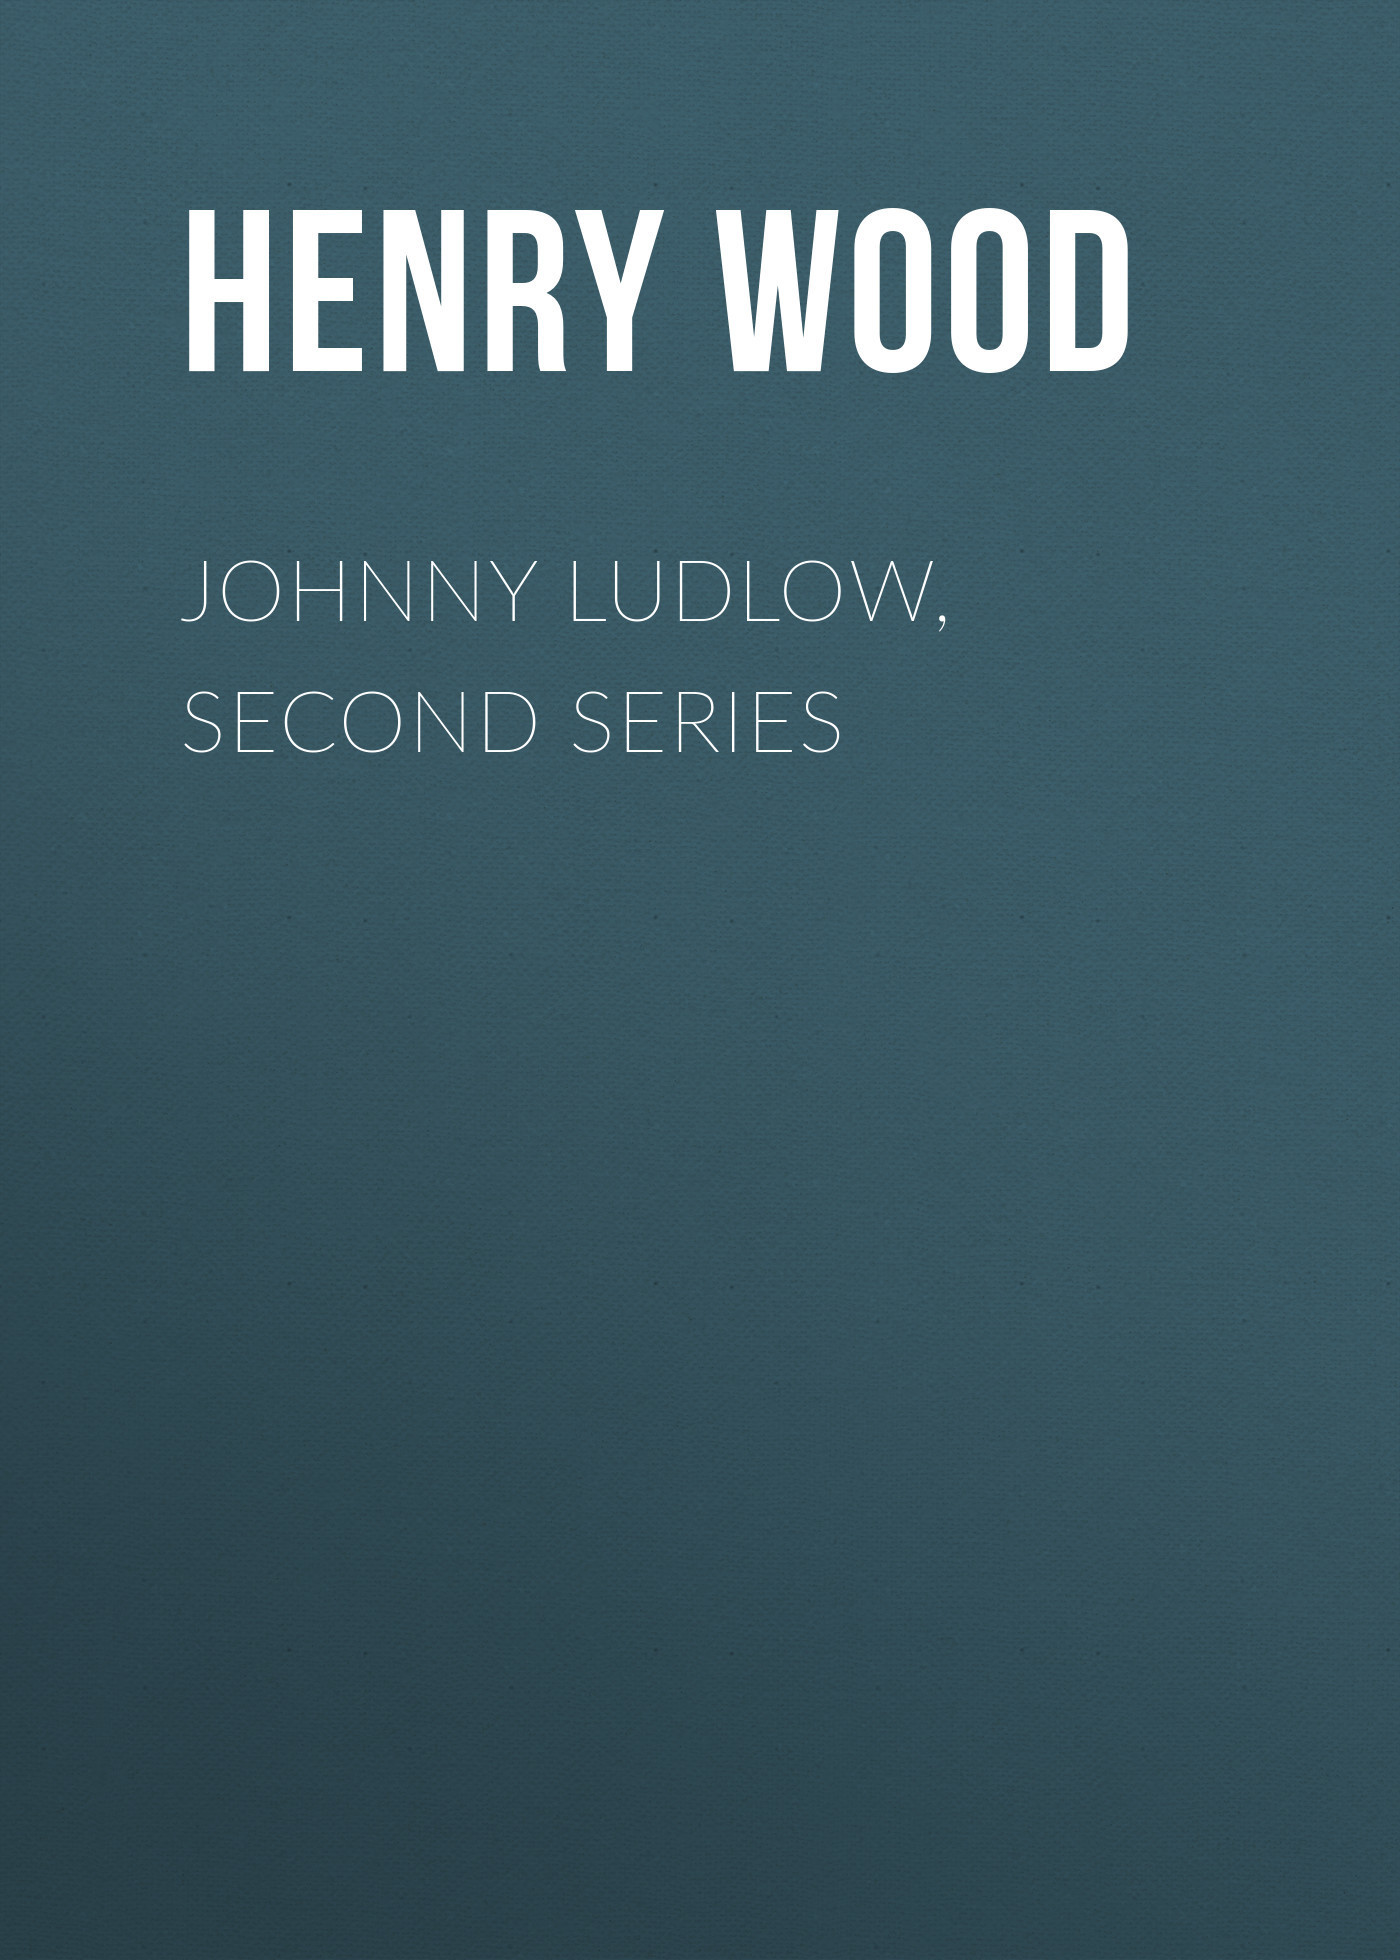 Henry Wood Johnny Ludlow, Second Series henry wood east lynne